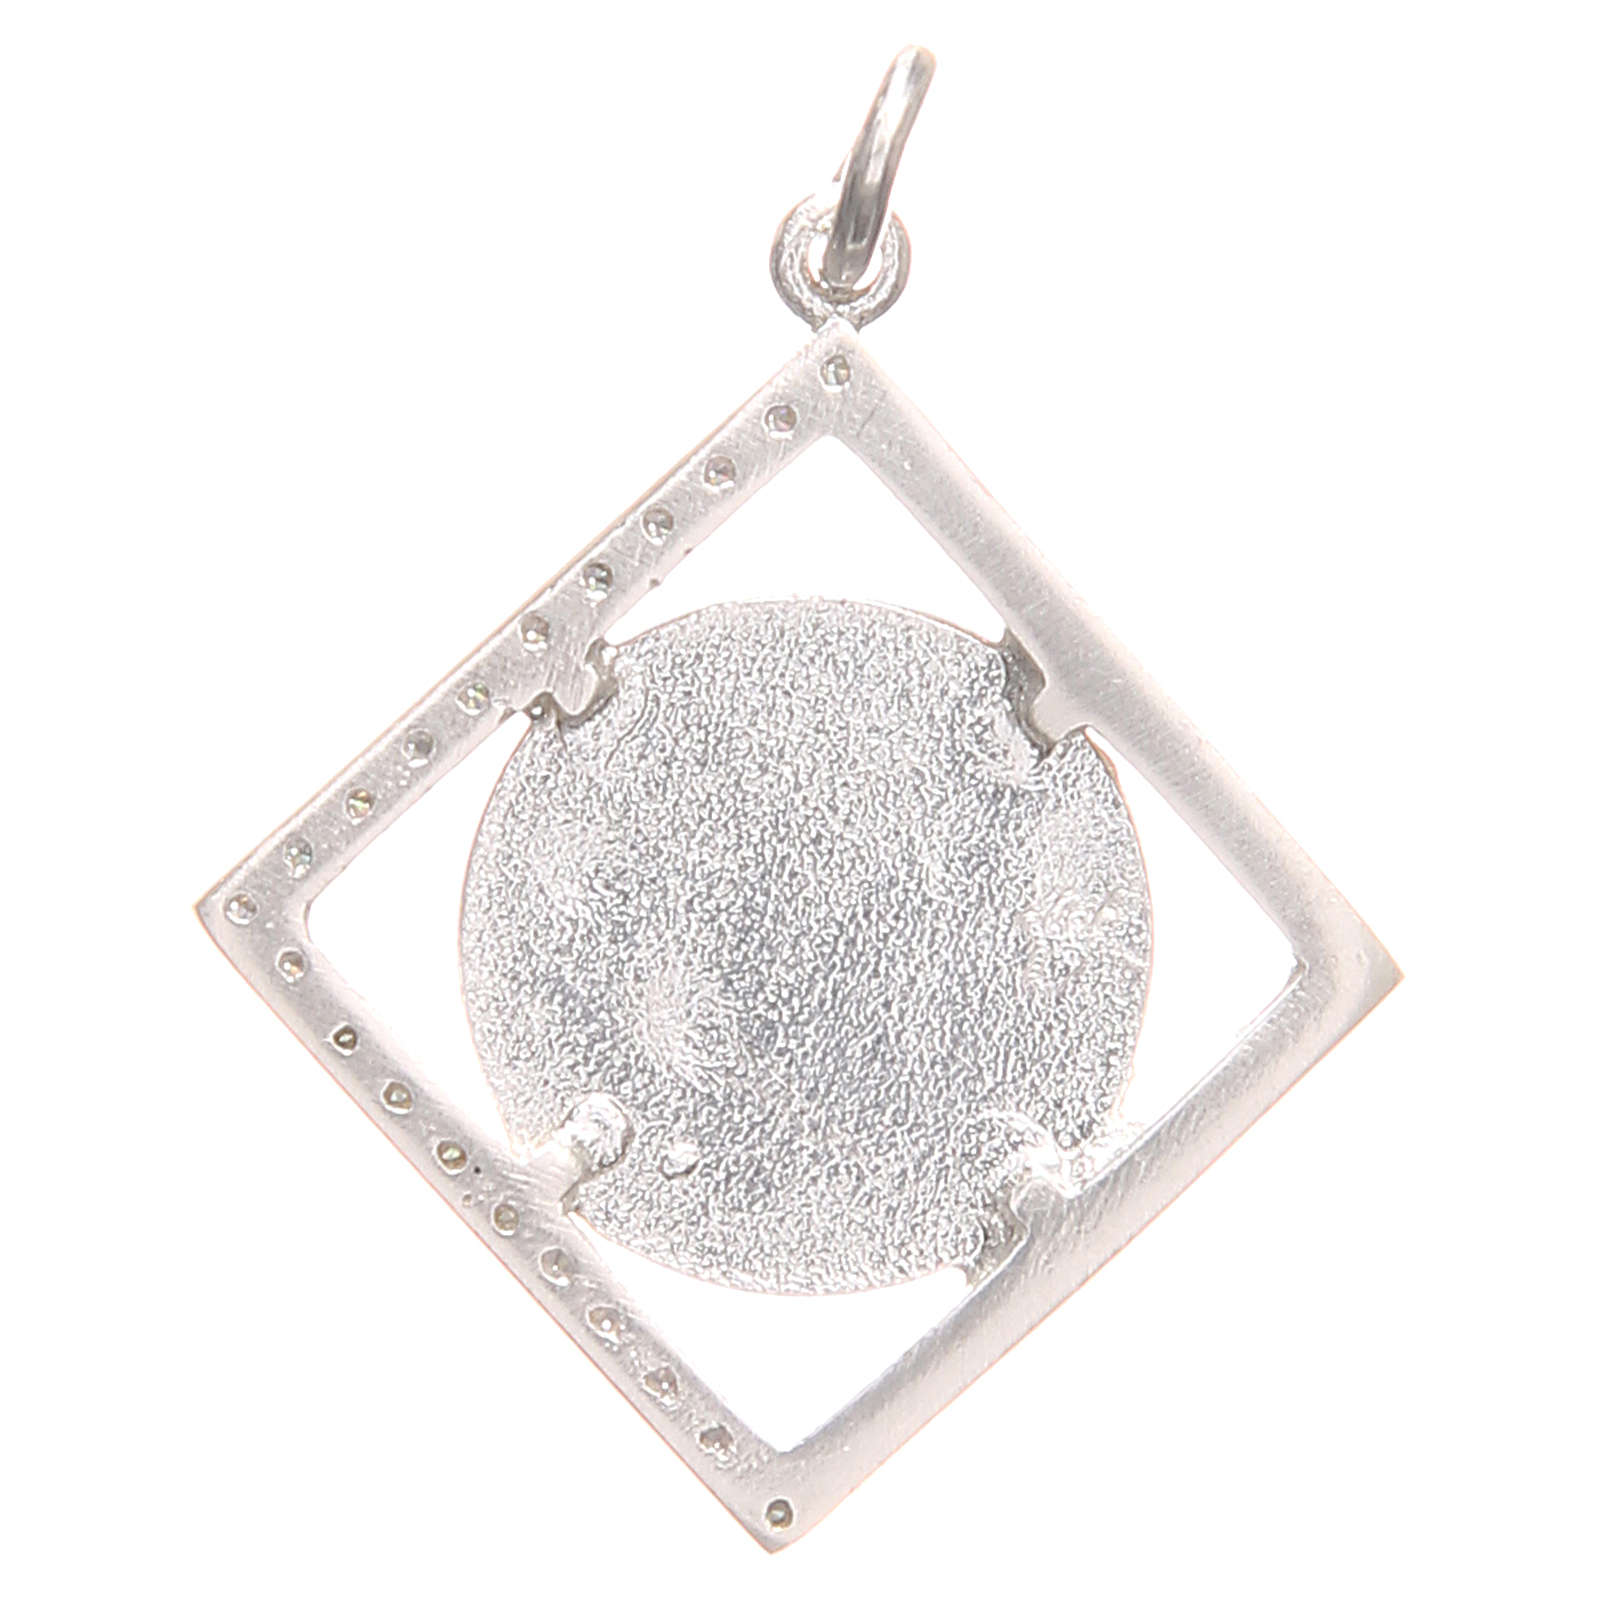 Pendant charm in 925 silver with Our Lady of Lourdes 1.5x1.5cm 4